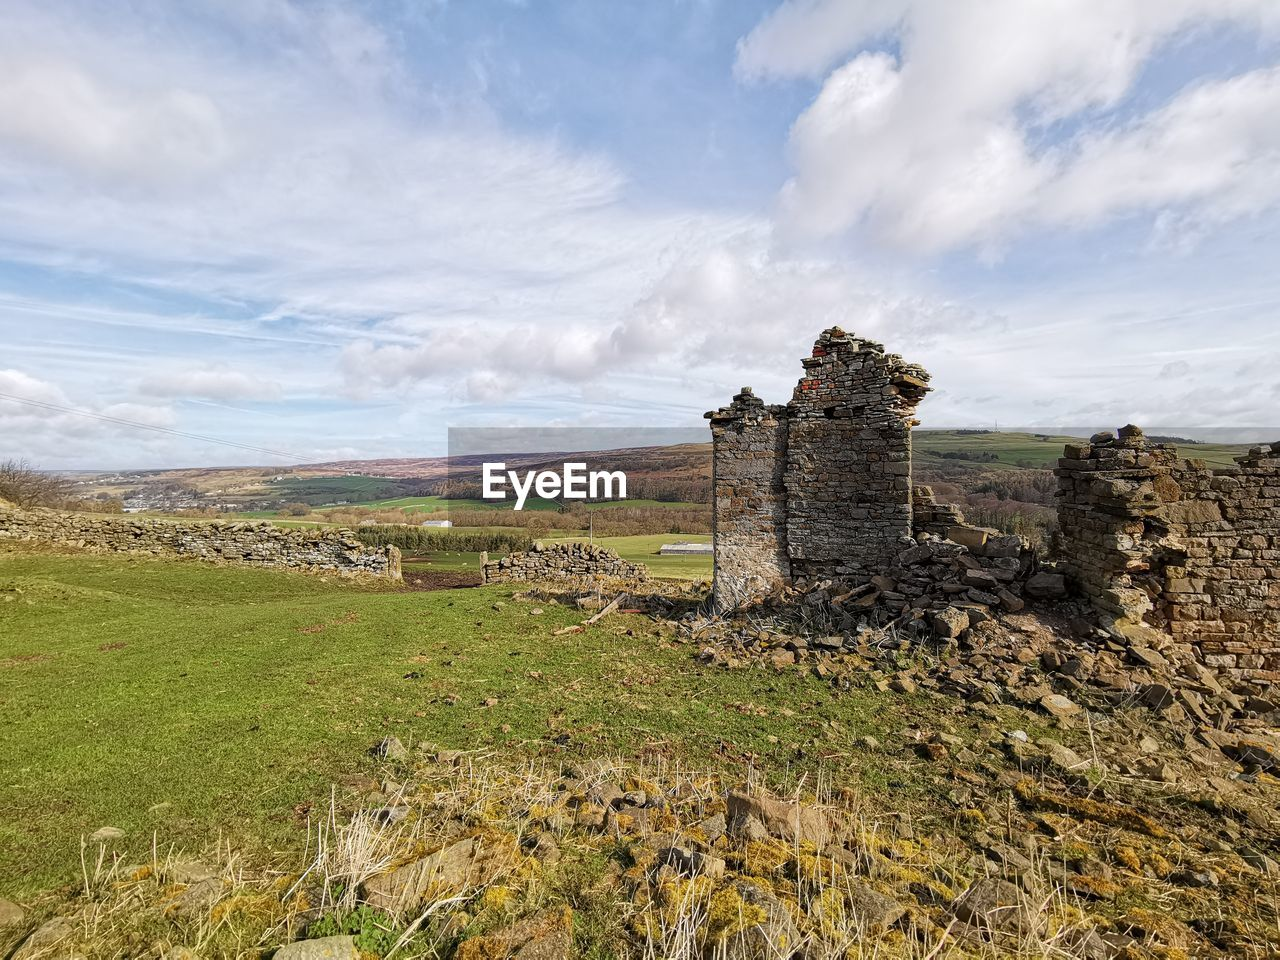 cloud - sky, sky, architecture, history, built structure, the past, nature, old ruin, land, no people, field, day, old, ancient, environment, landscape, plant, building exterior, grass, ruined, outdoors, ancient civilization, stone wall, ancient history, archaeology